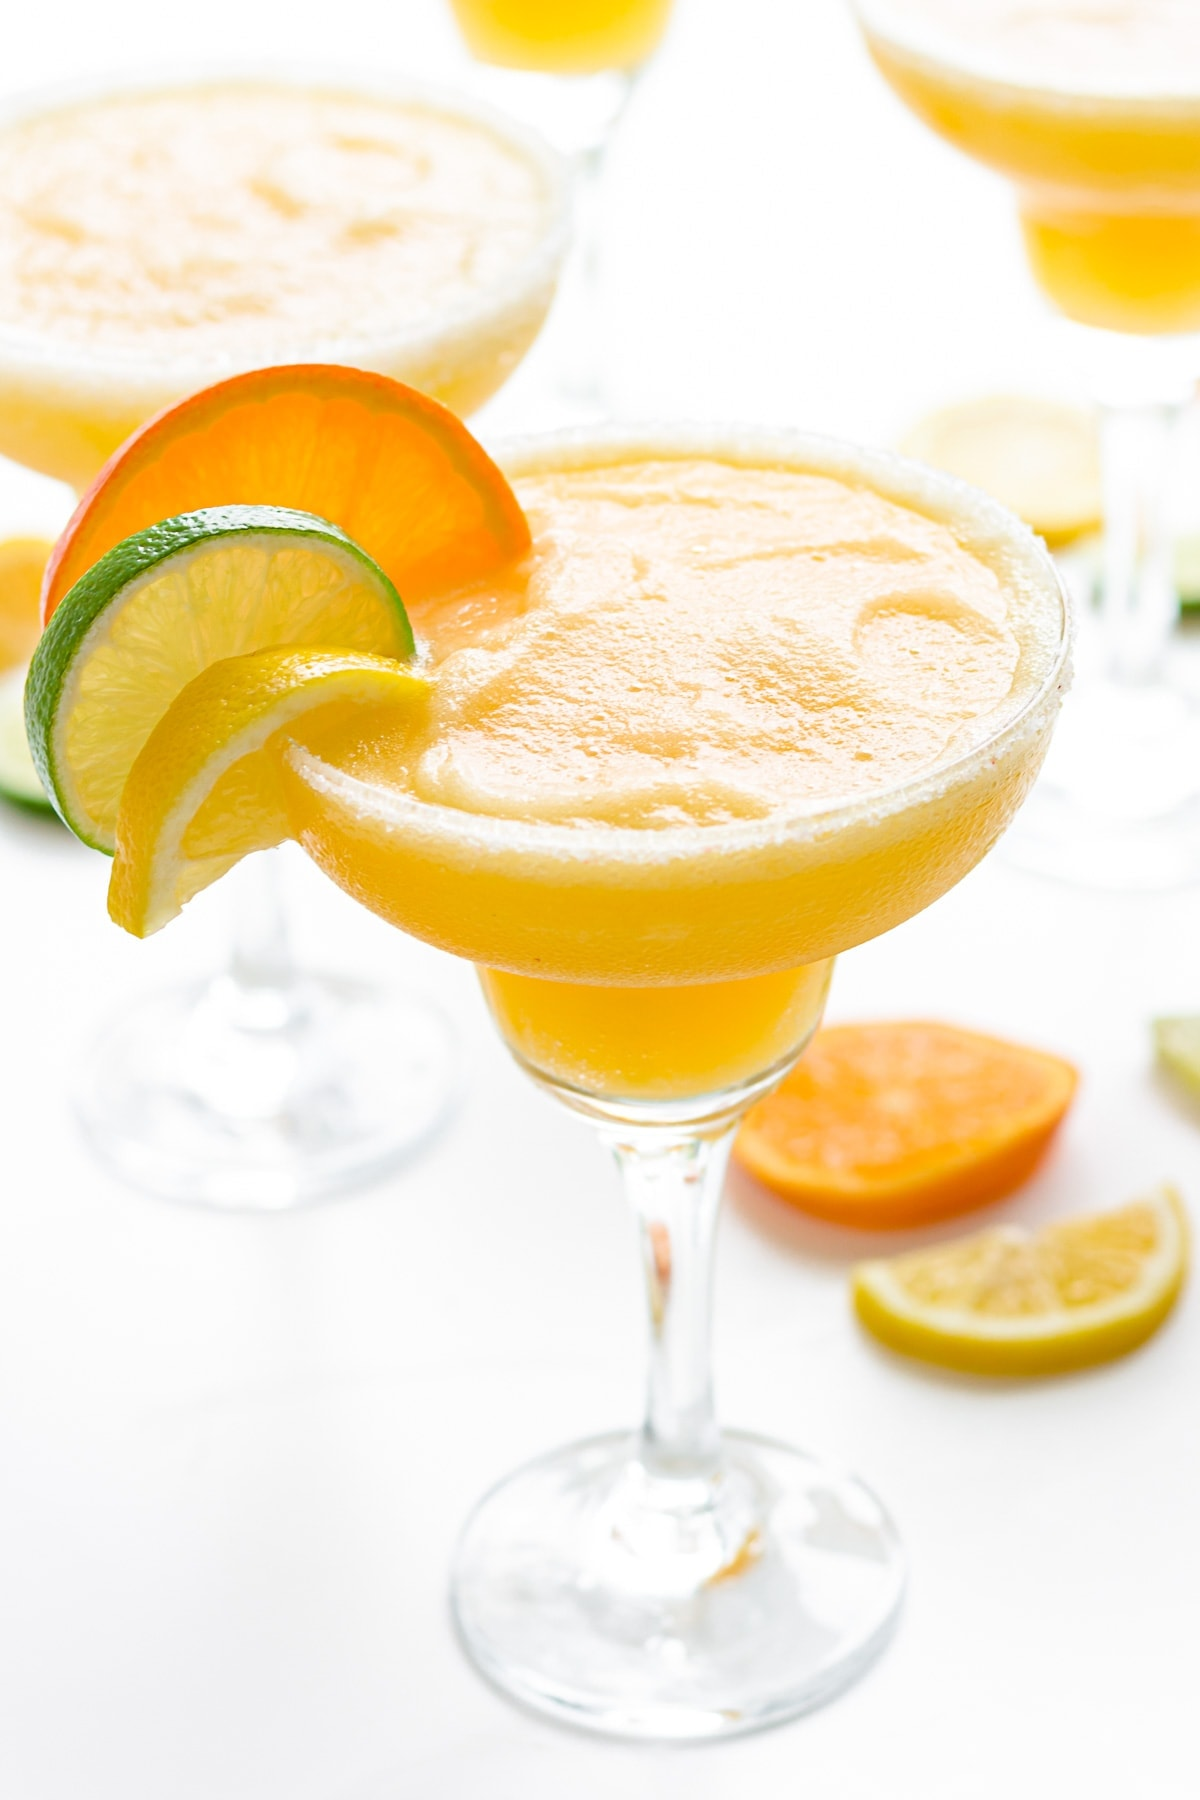 Bright orange frozen margarita in a glass with slices of lemon, lime, and orange on the rim.